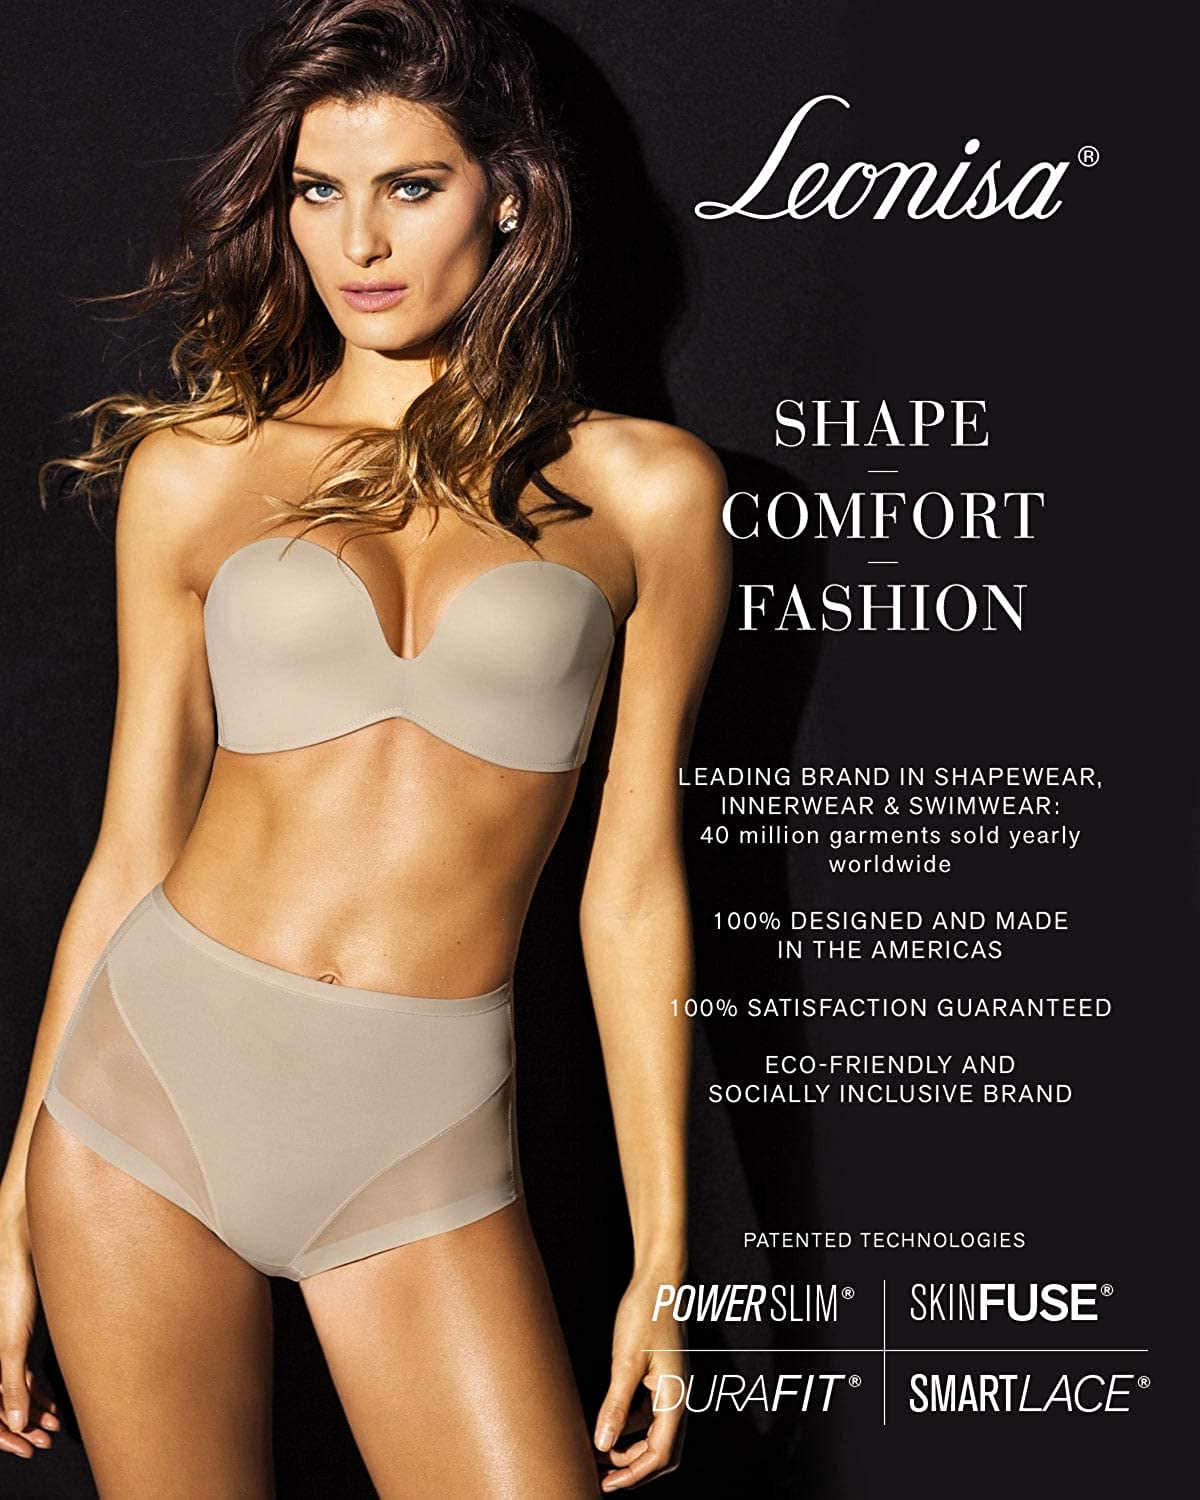 eb87d932c1 Leonisa Women s Petite Plus Well-Rounded Invisible Butt Lifter Shaper Short  at Amazon Women s Clothing store